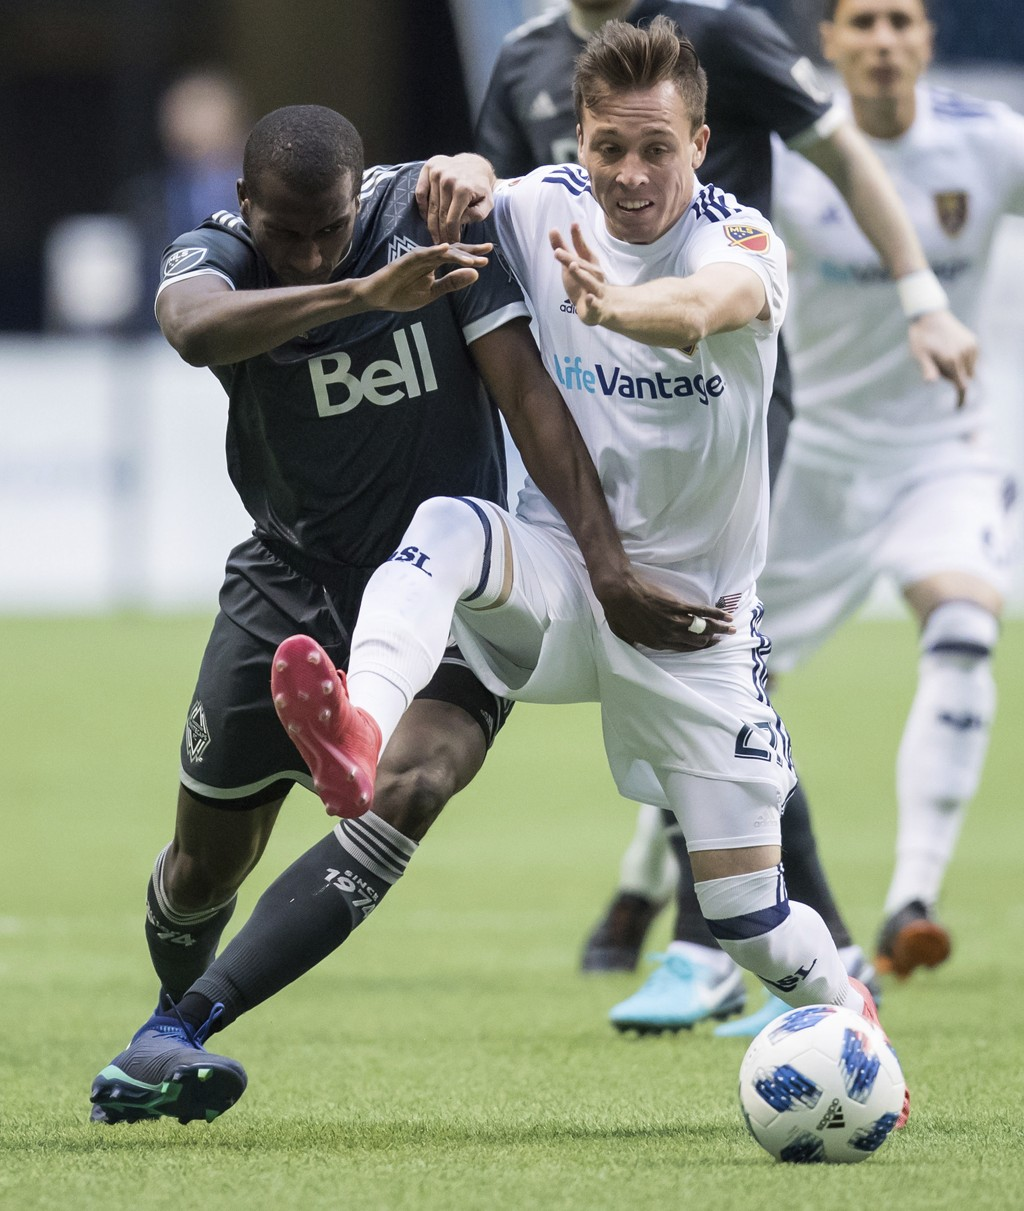 Vancouver Whitecaps' Ali Ghazal, left, and Real Salt Lake's Corey Baird vie for the ball during the first half of an MLS soccer match Friday, April 27...